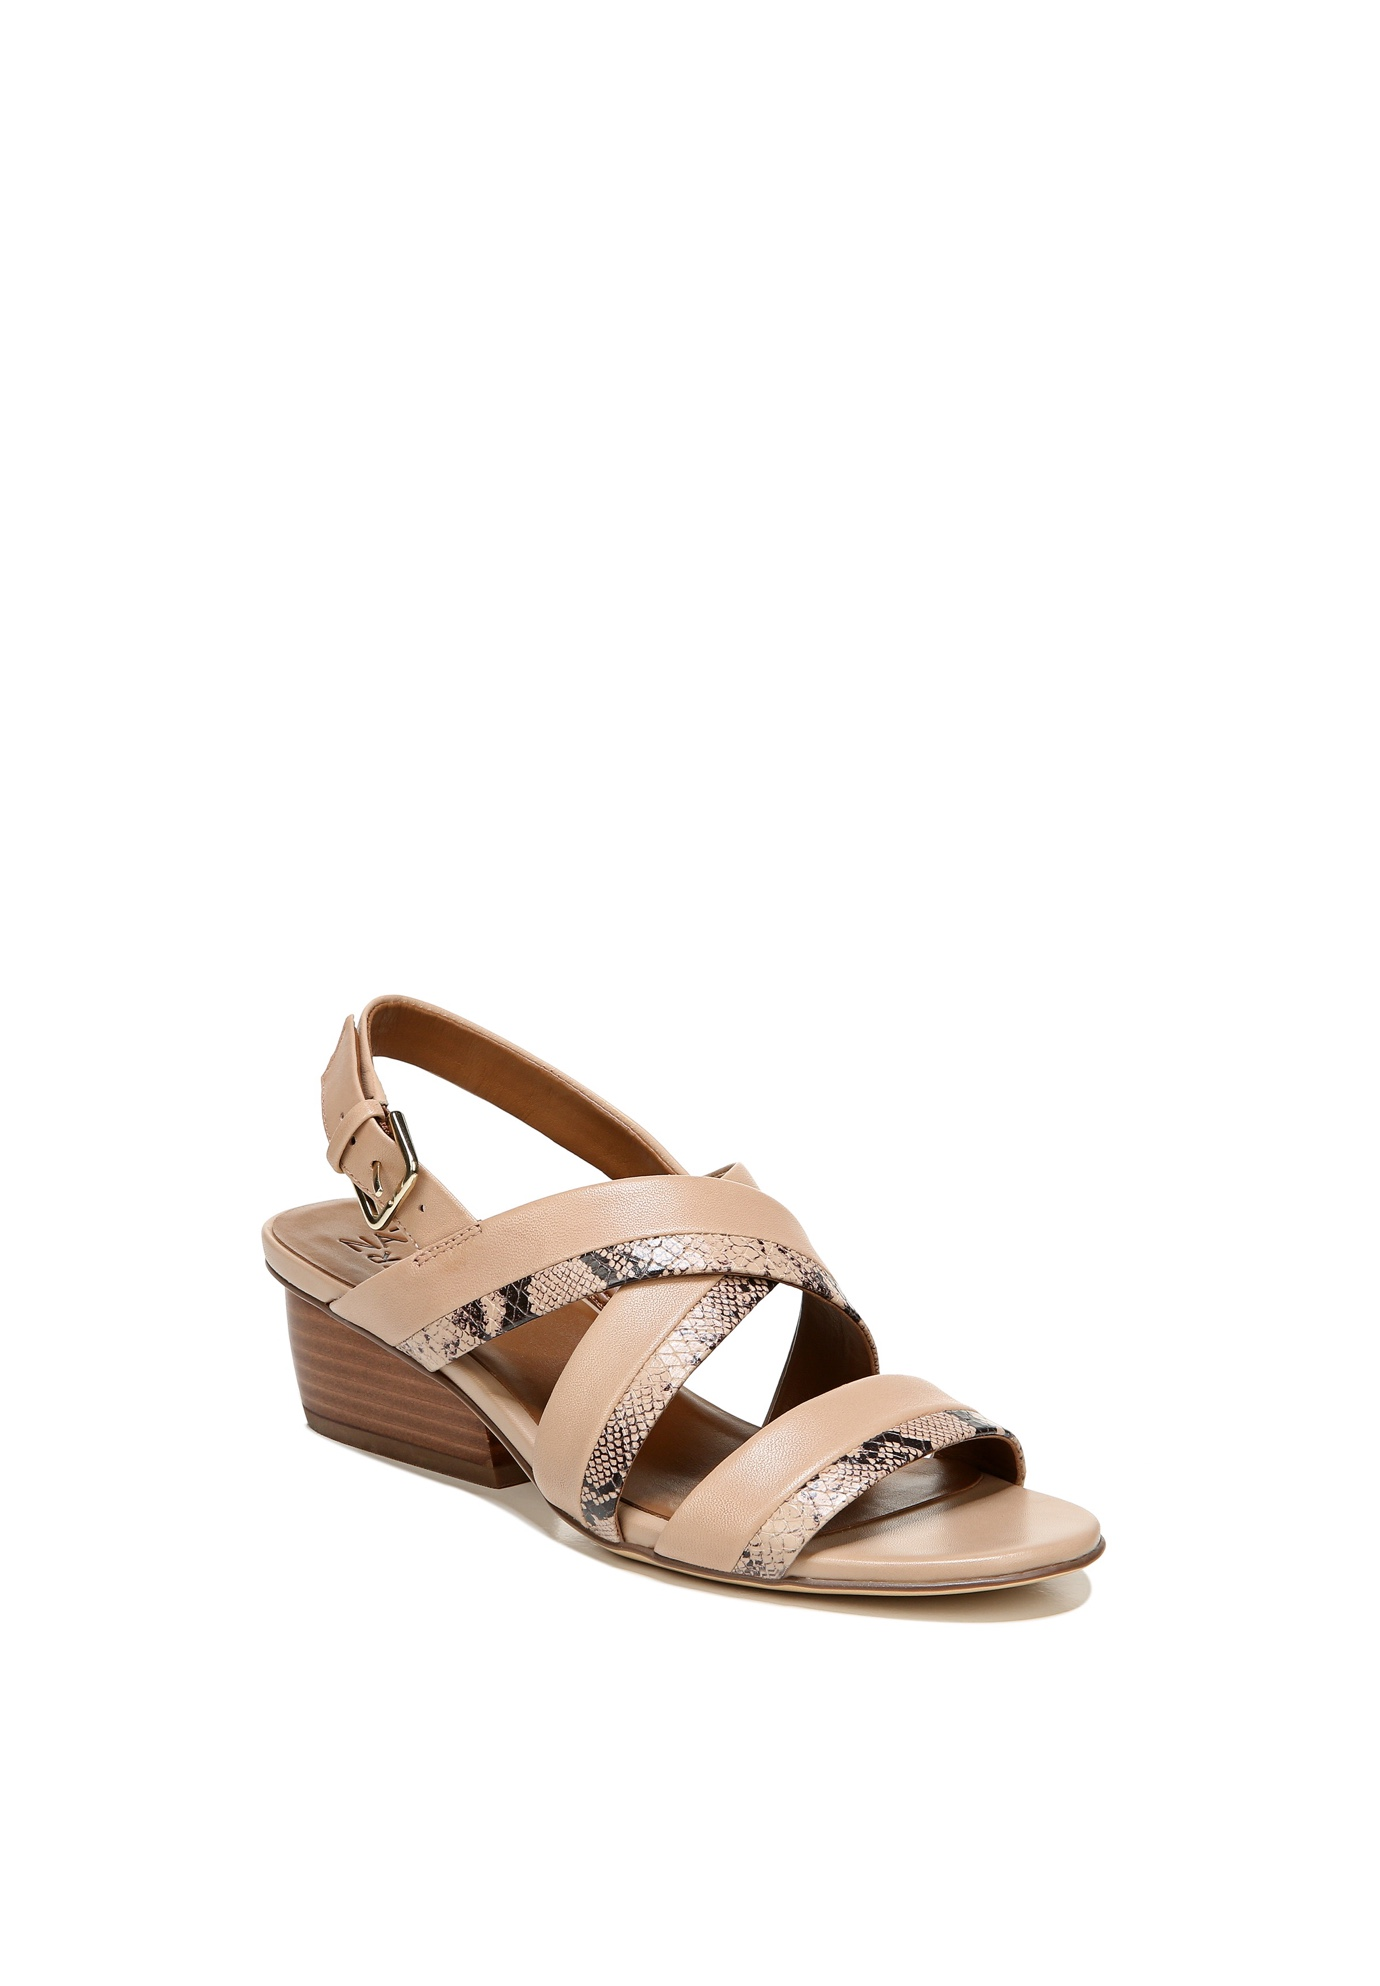 Cecilia Sandal by Naturalizer,